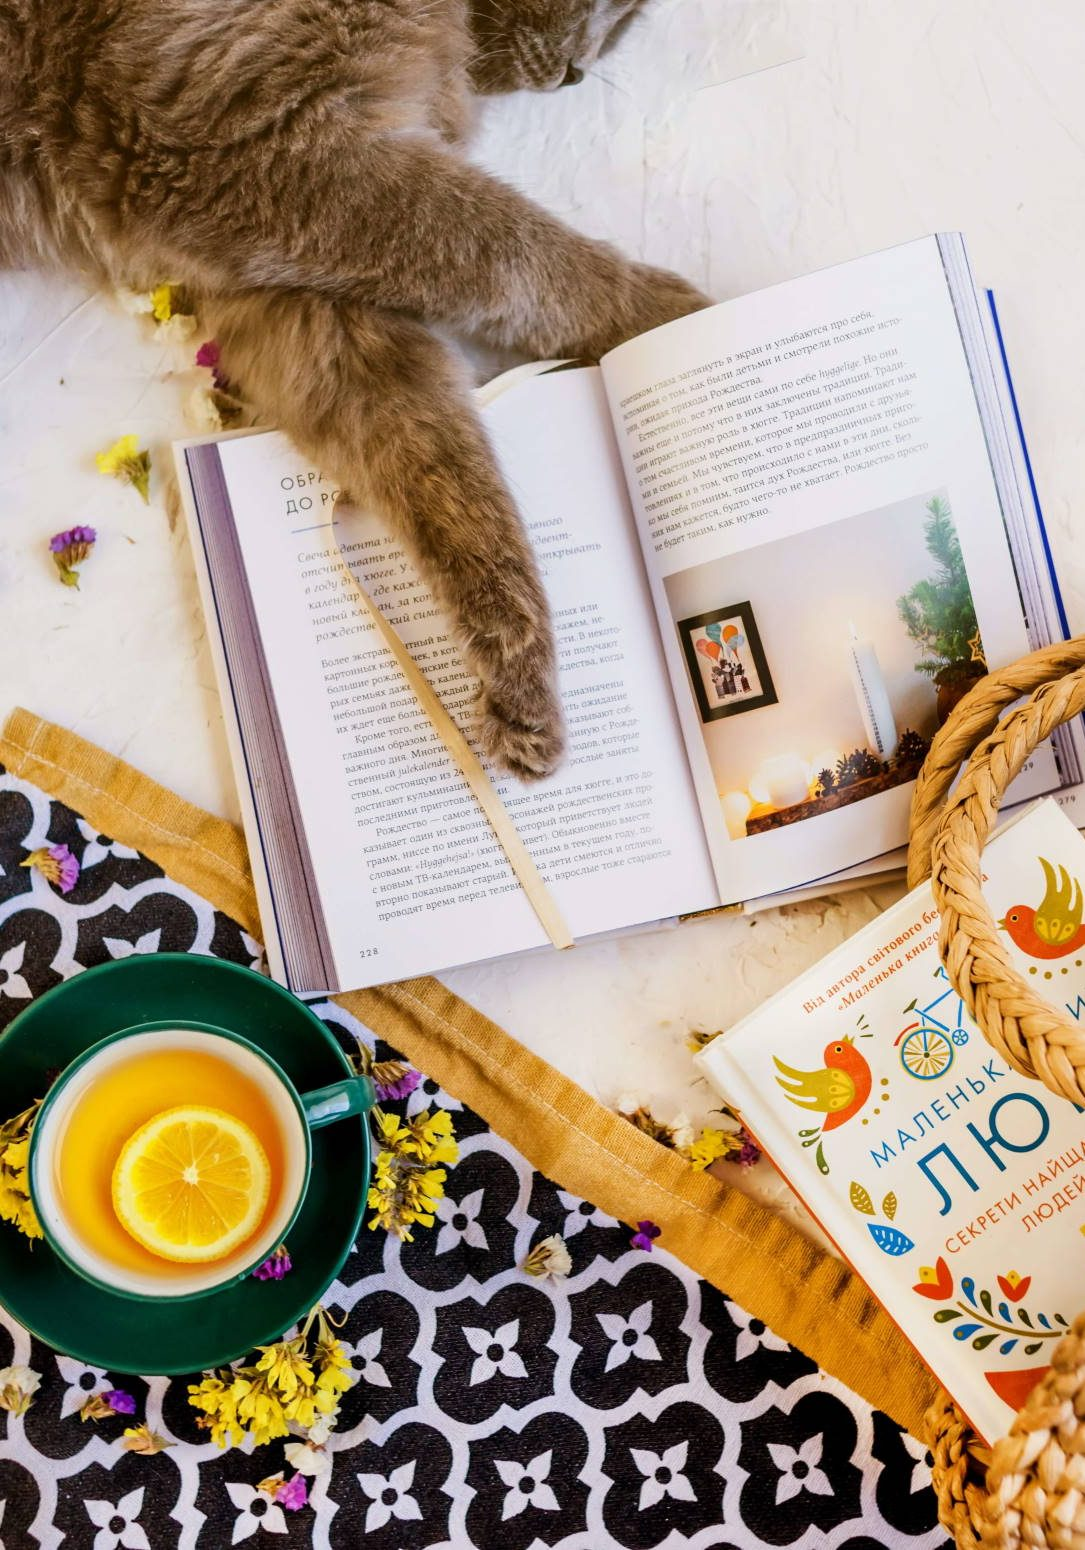 1 Cool Books for Brilliant Cat Lovers - Cats Will Play - Image by Євгенія Височина via Unsplash